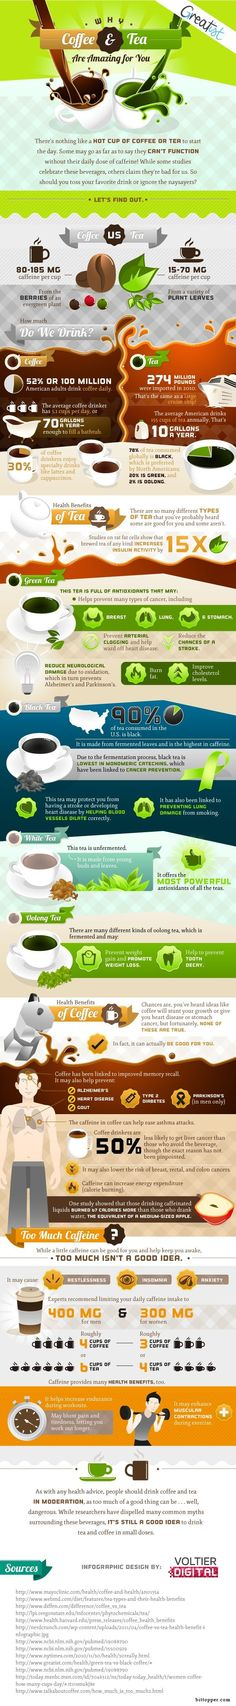 Awesome info graphic about the health benefits of coffee & tea